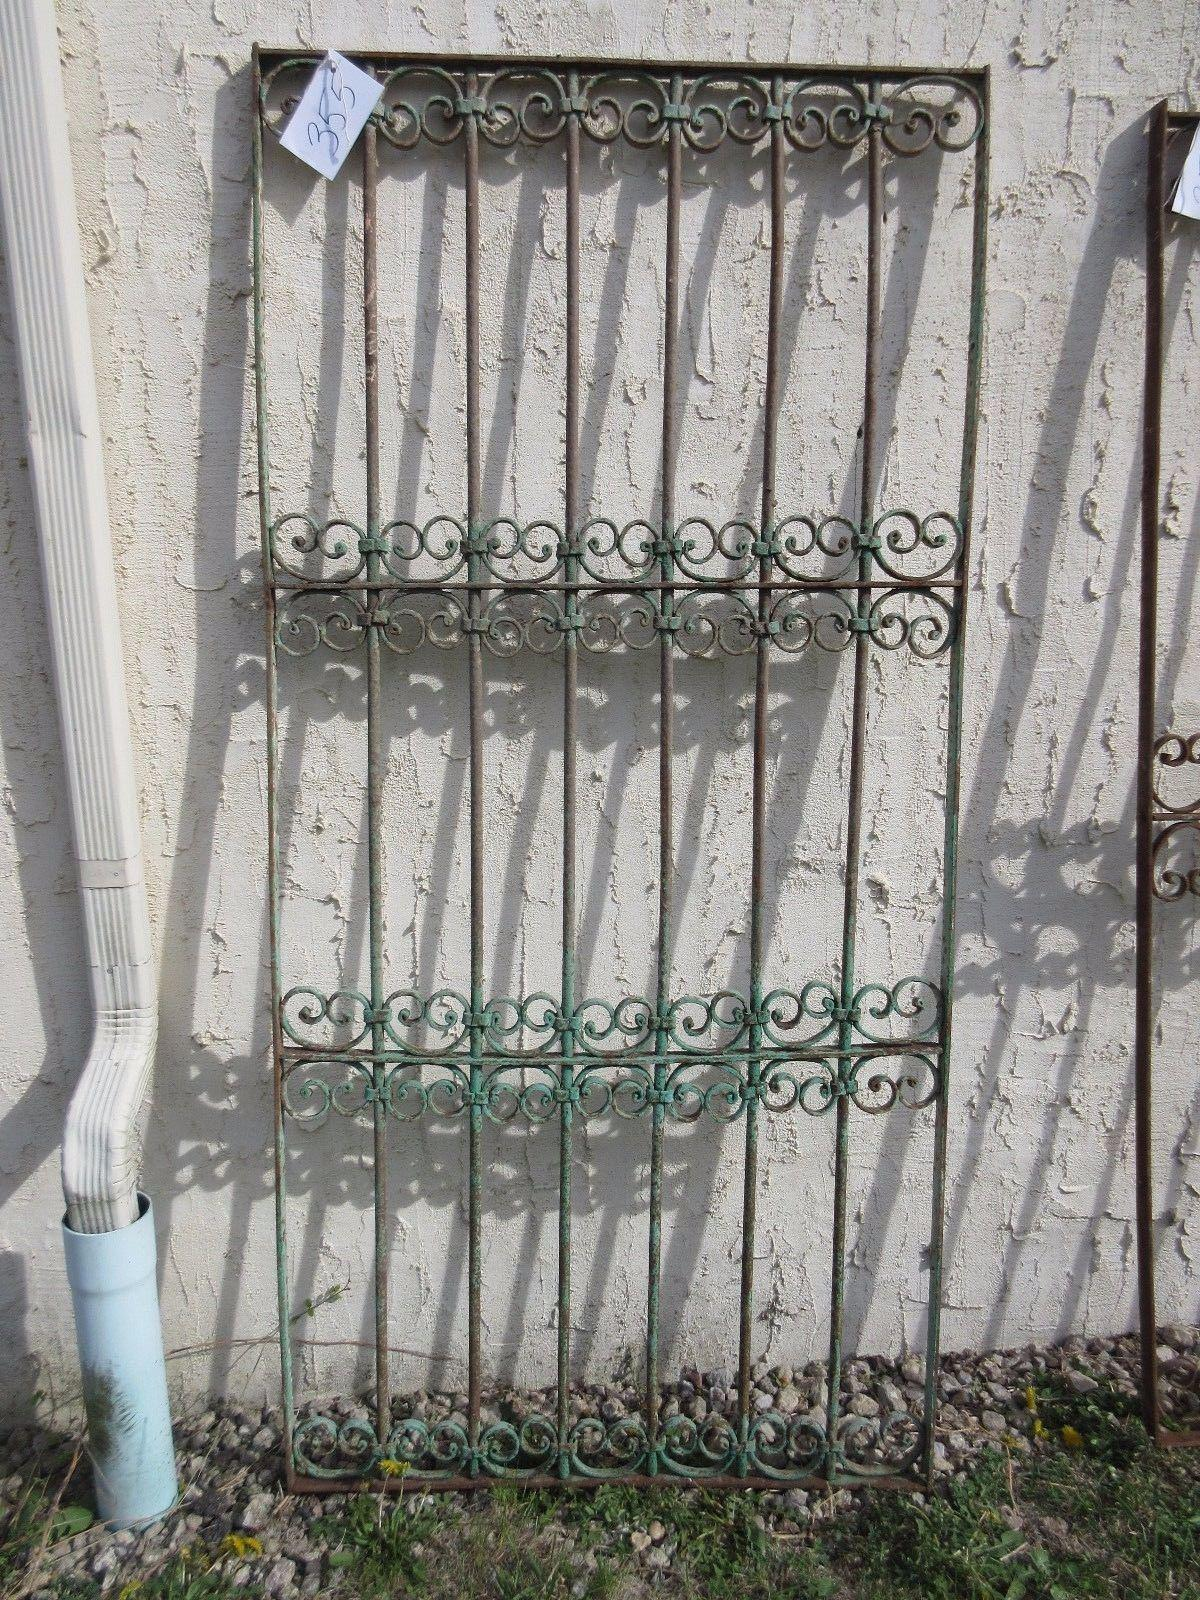 Antique Victorian Verdigris Iron Gate Or Garden Fence For Sale   Image 5 Of  7